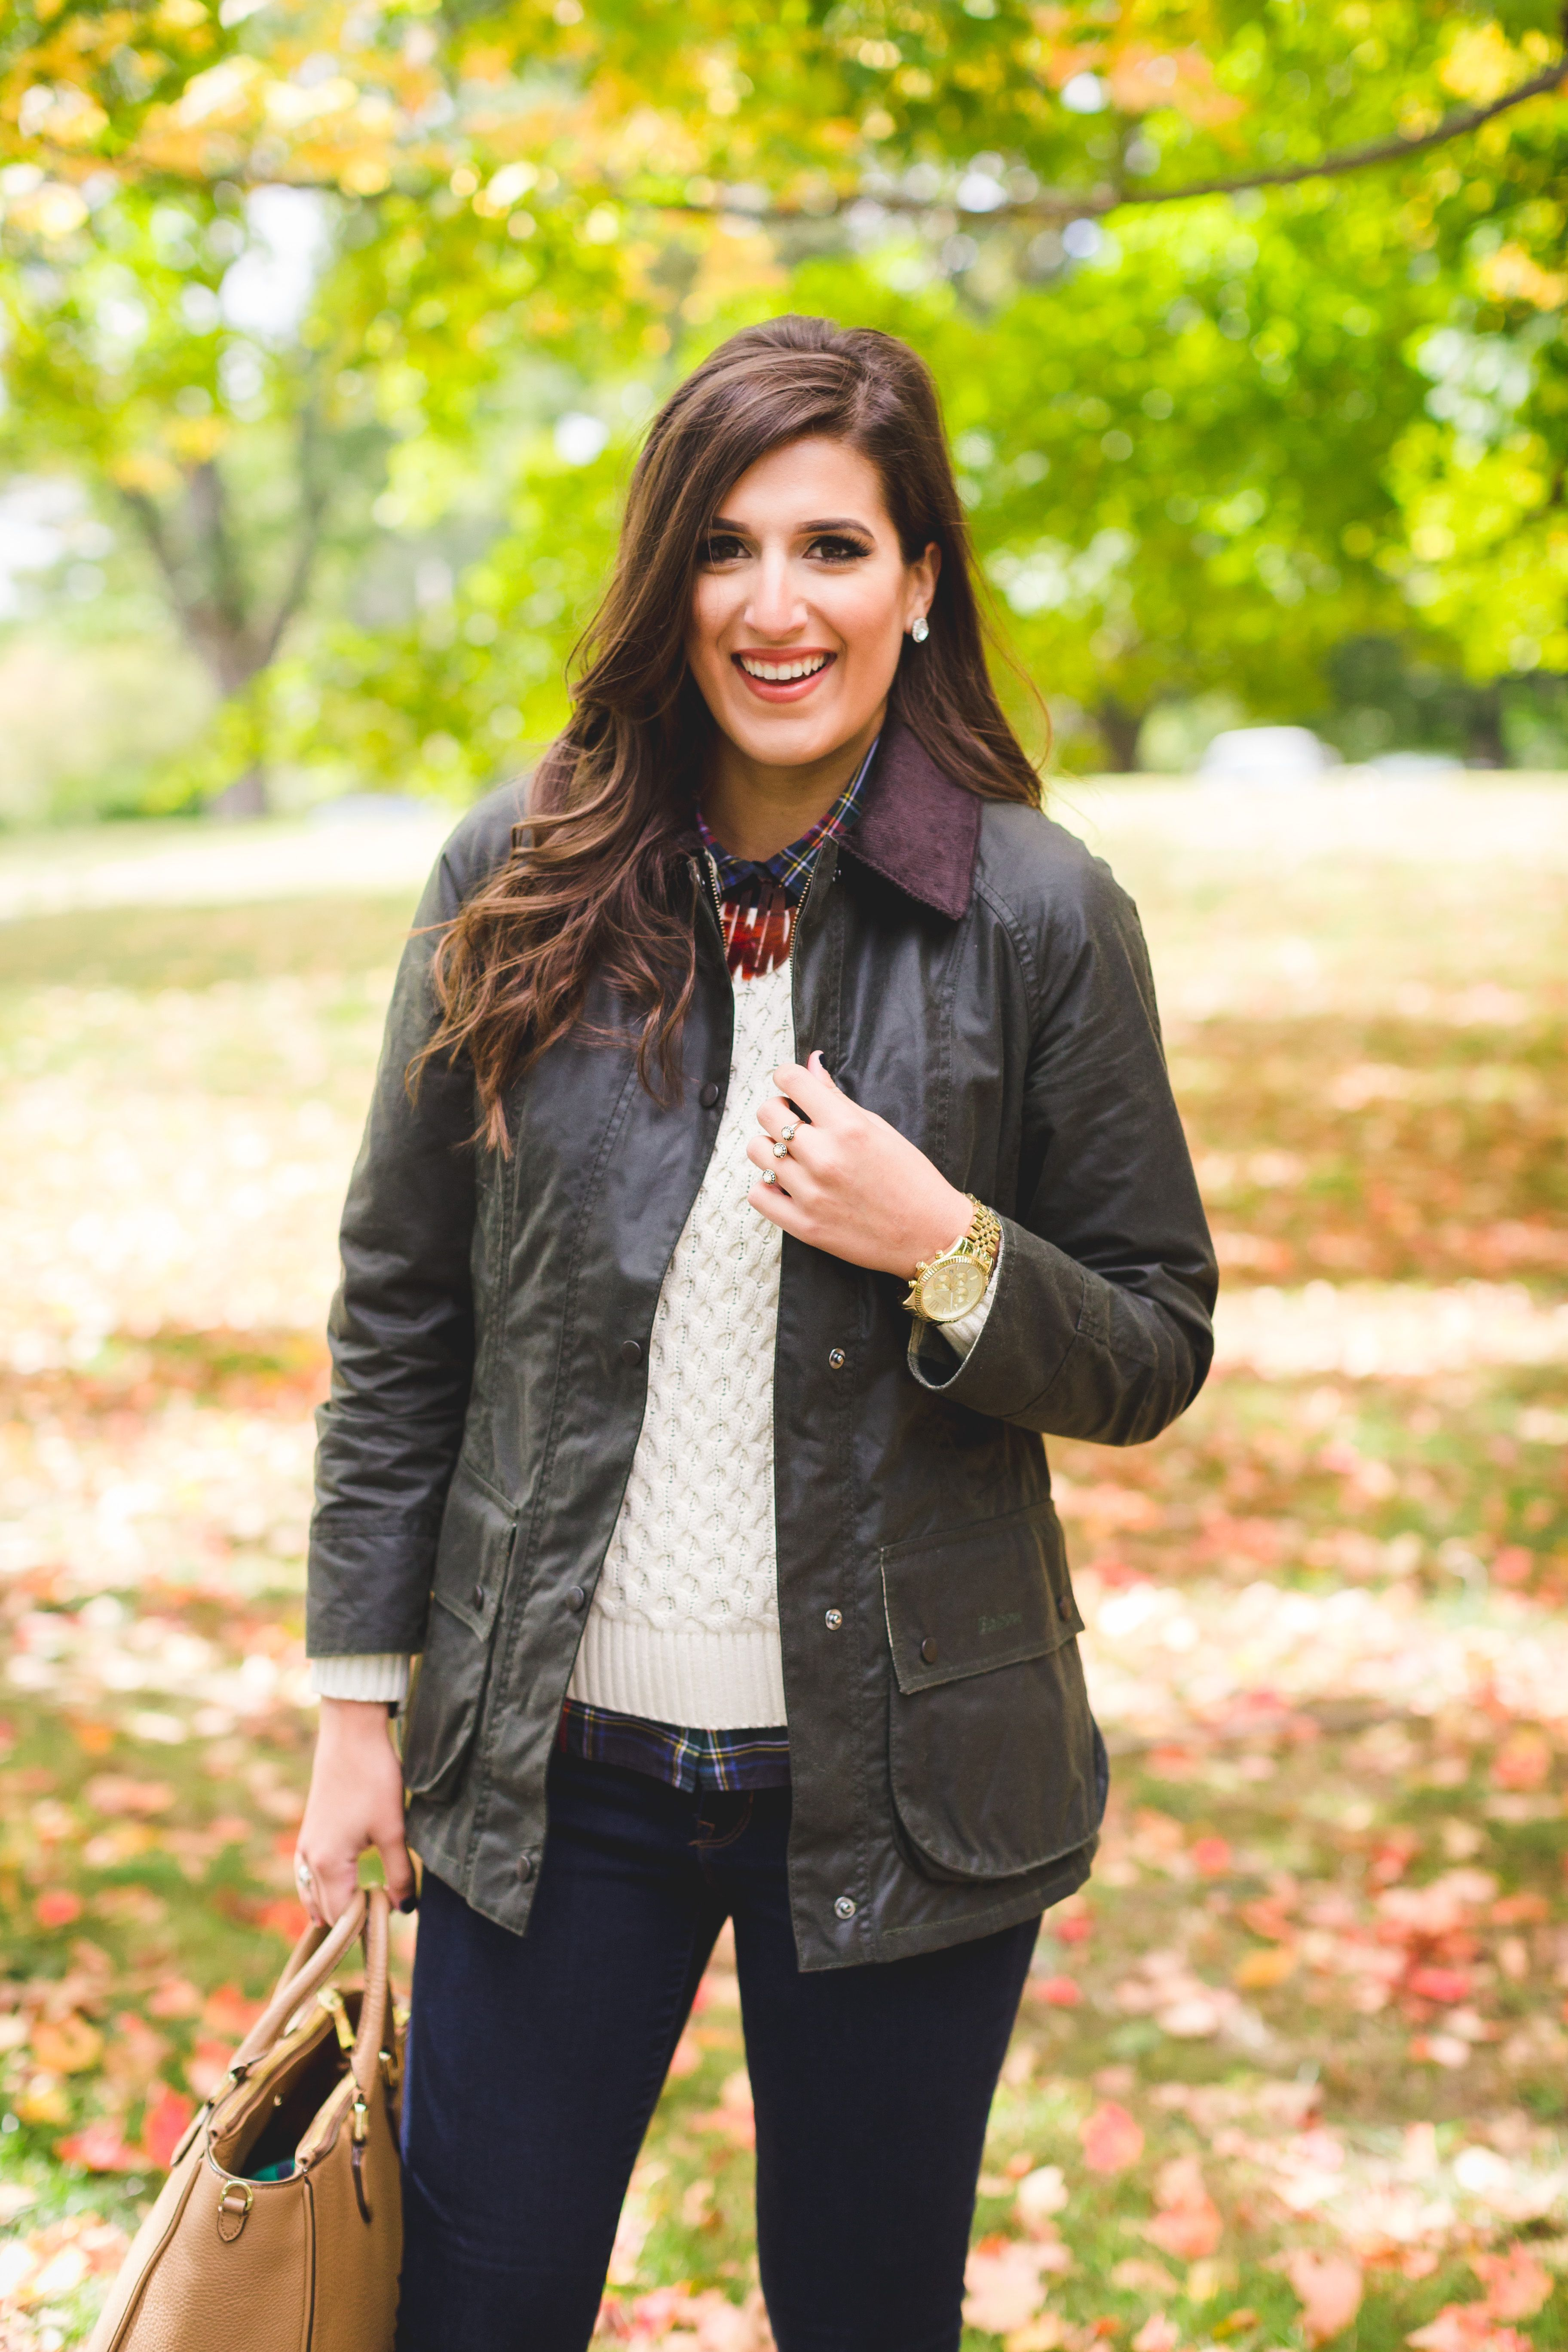 Barbour Wax Jacket - A Southern Drawl